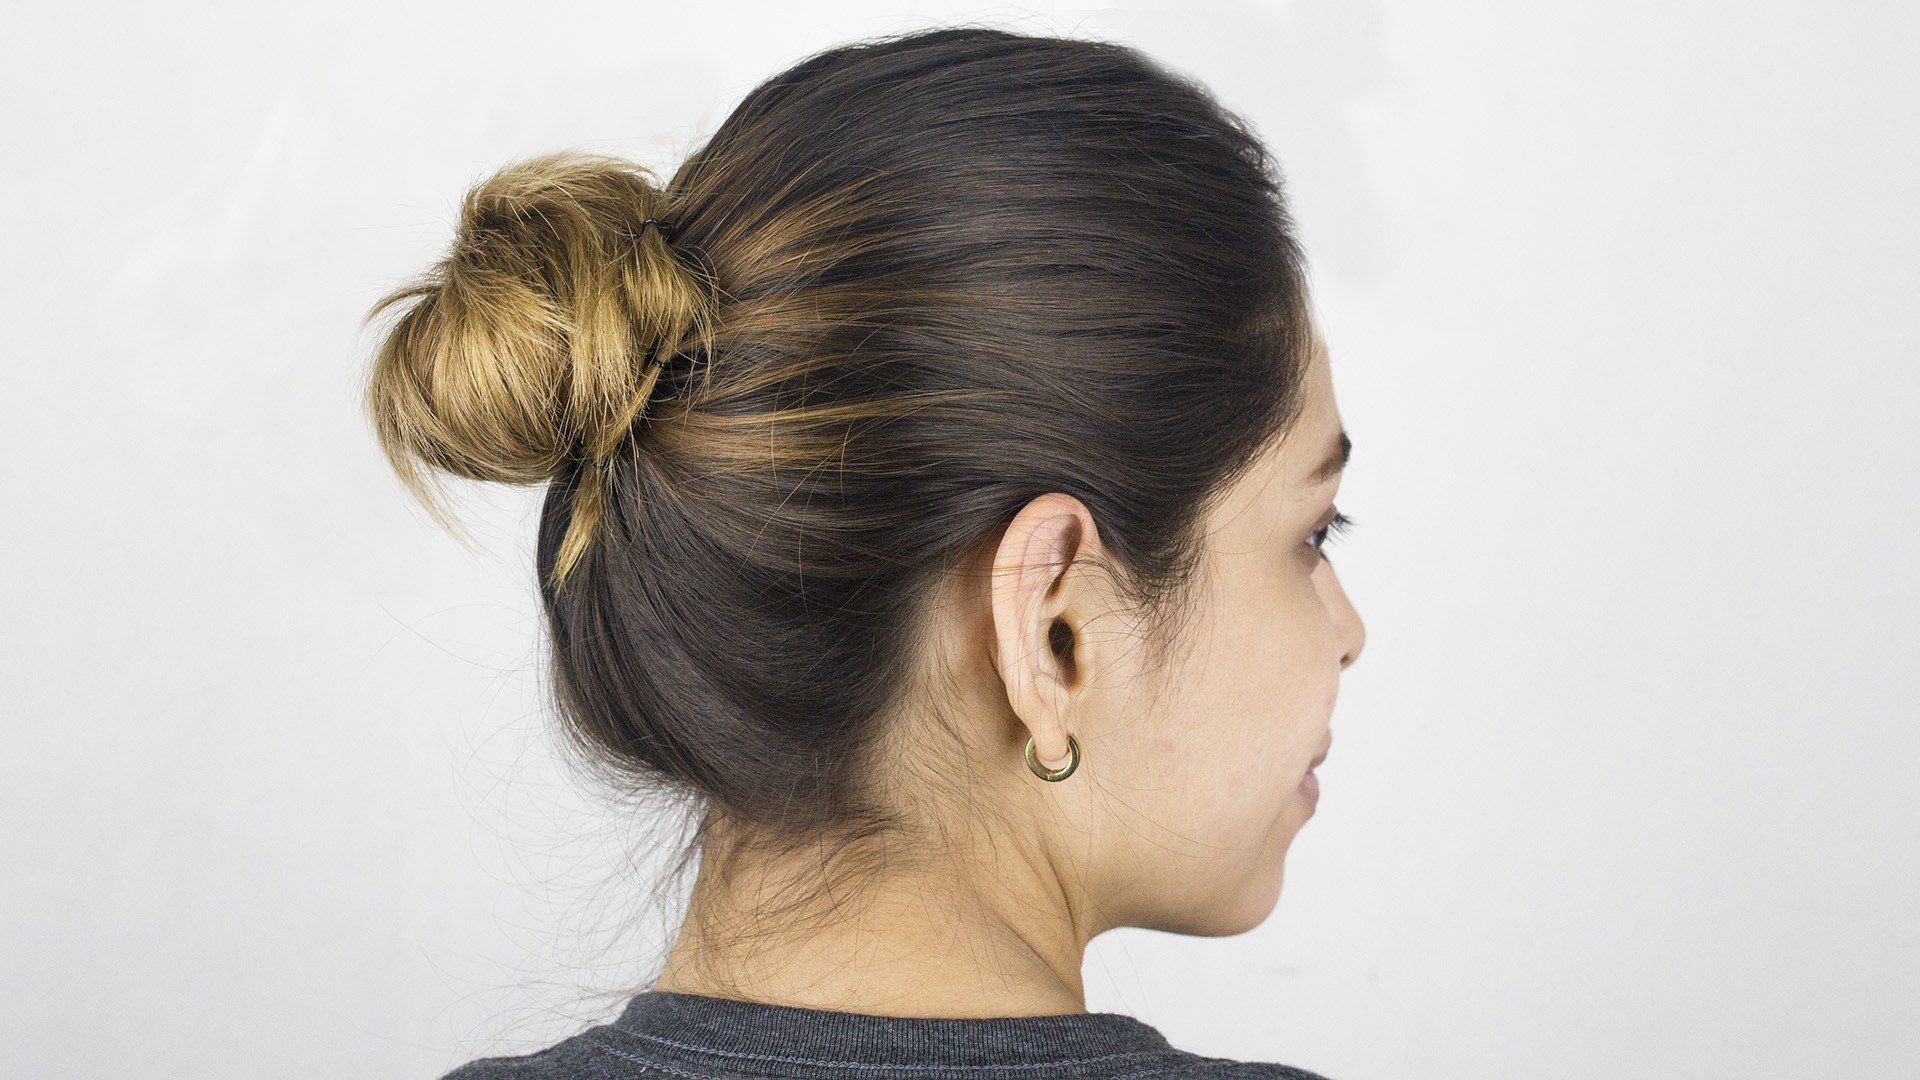 New How To Make A Simple Bun In Hair 9 Steps With Pictures Ideas With Pictures